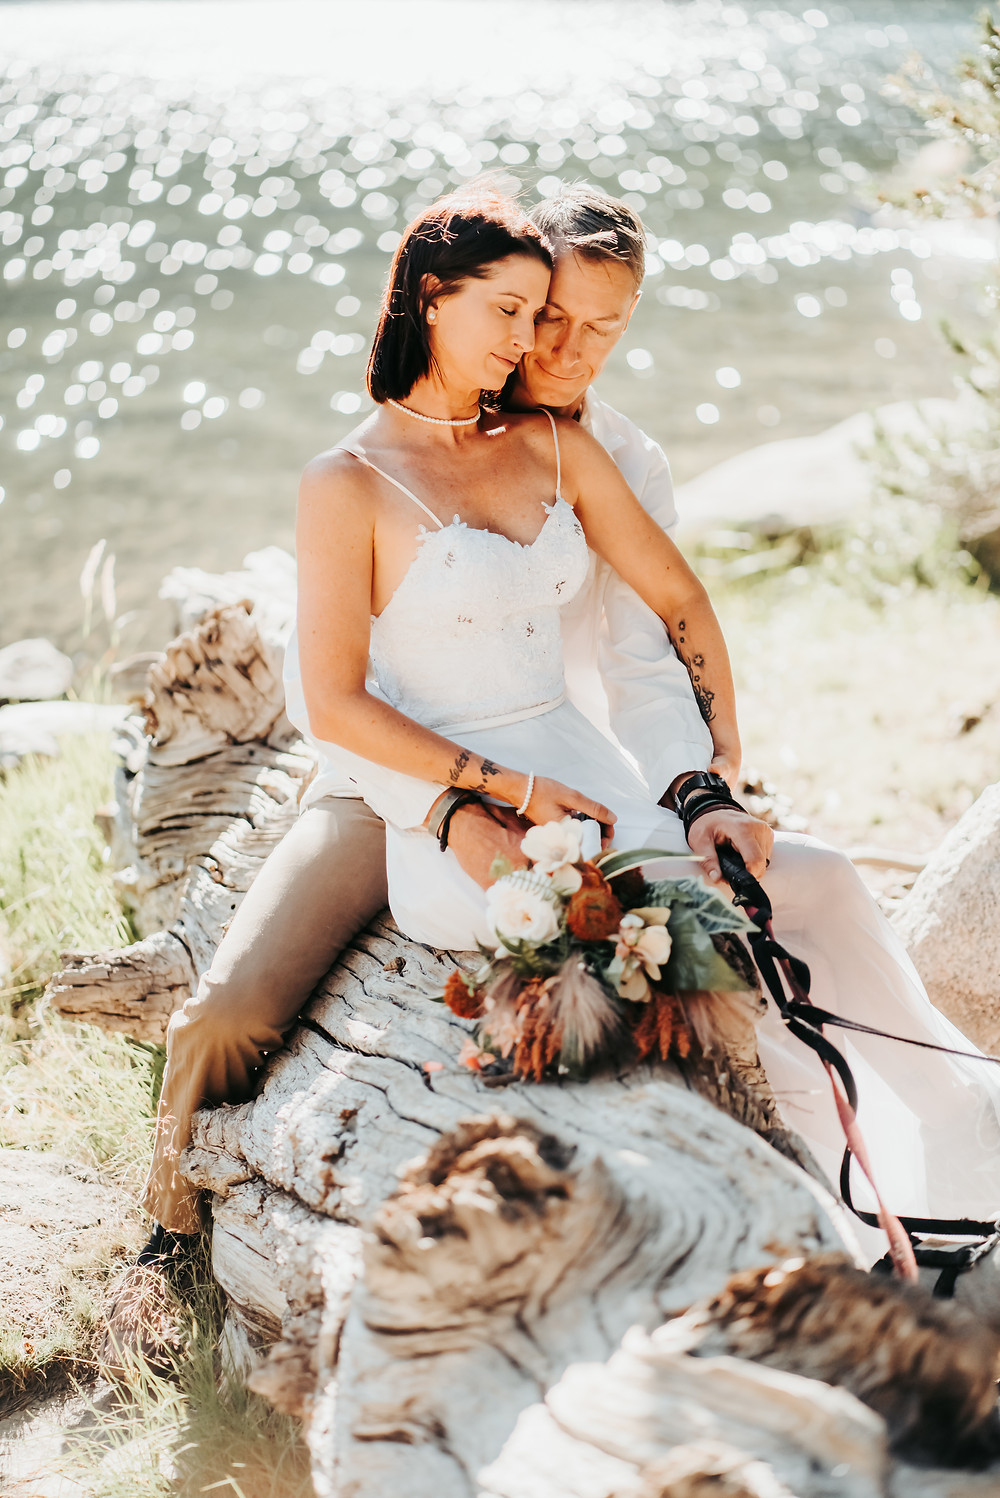 Bride sitting on Grooms lap on a dead tree next to a shimmering lake.  Their eyes are closed and look completely relaxed.  Photo is capturing eloping in Lake Tahoe